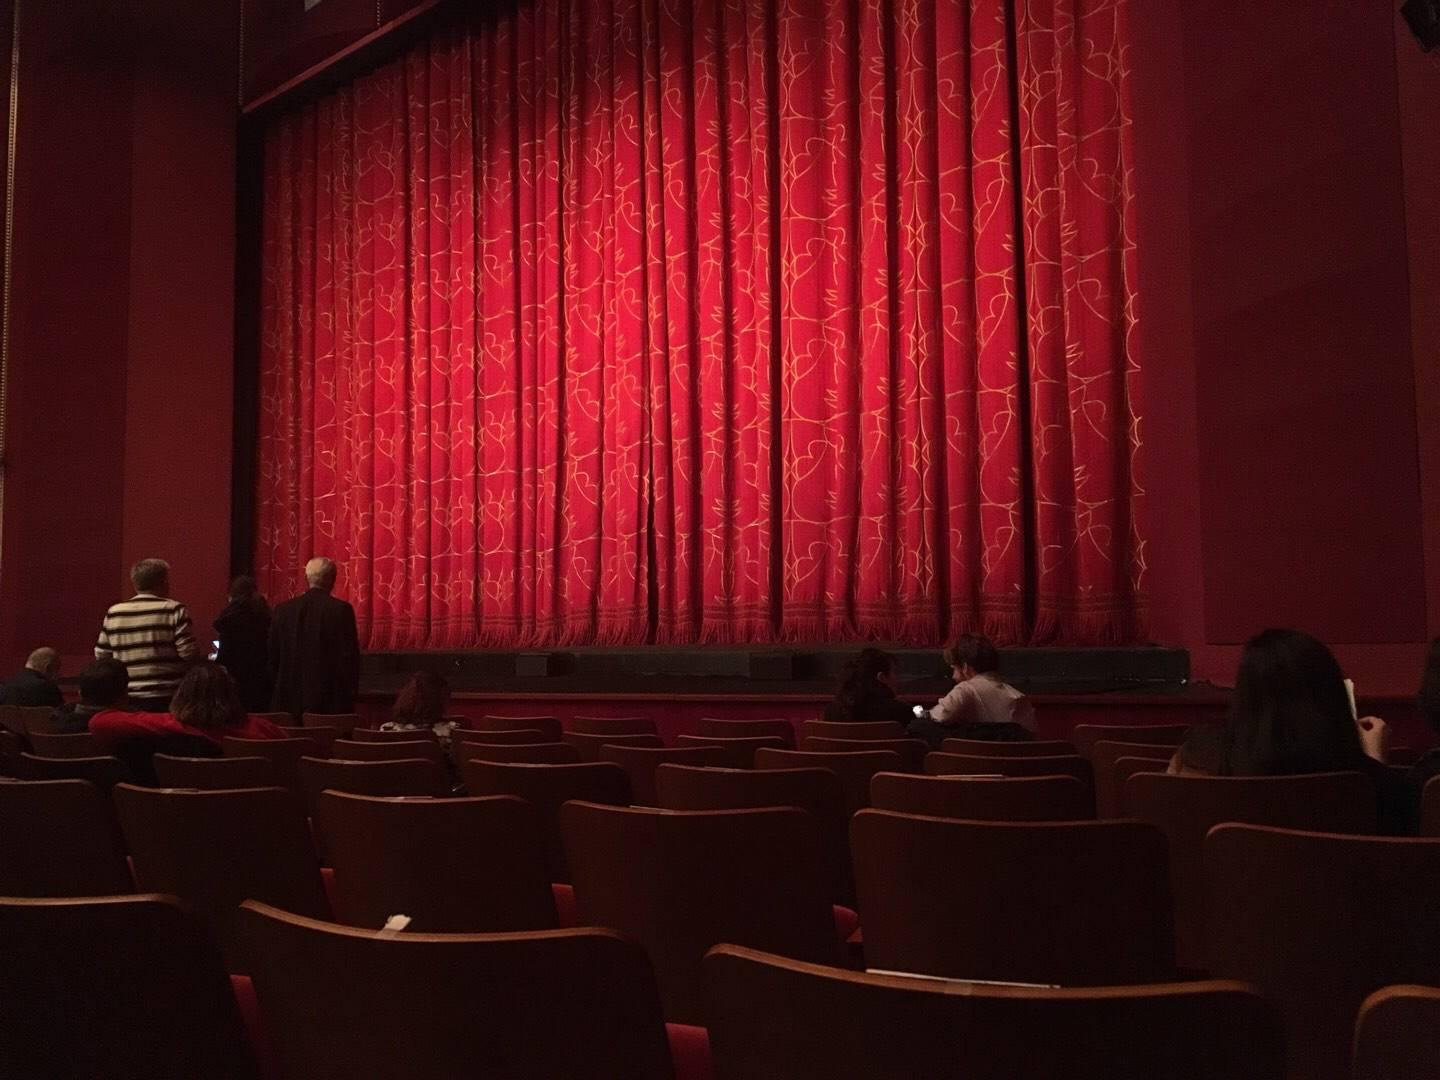 The Kennedy Center Opera House Section Orch Row O Seat 22